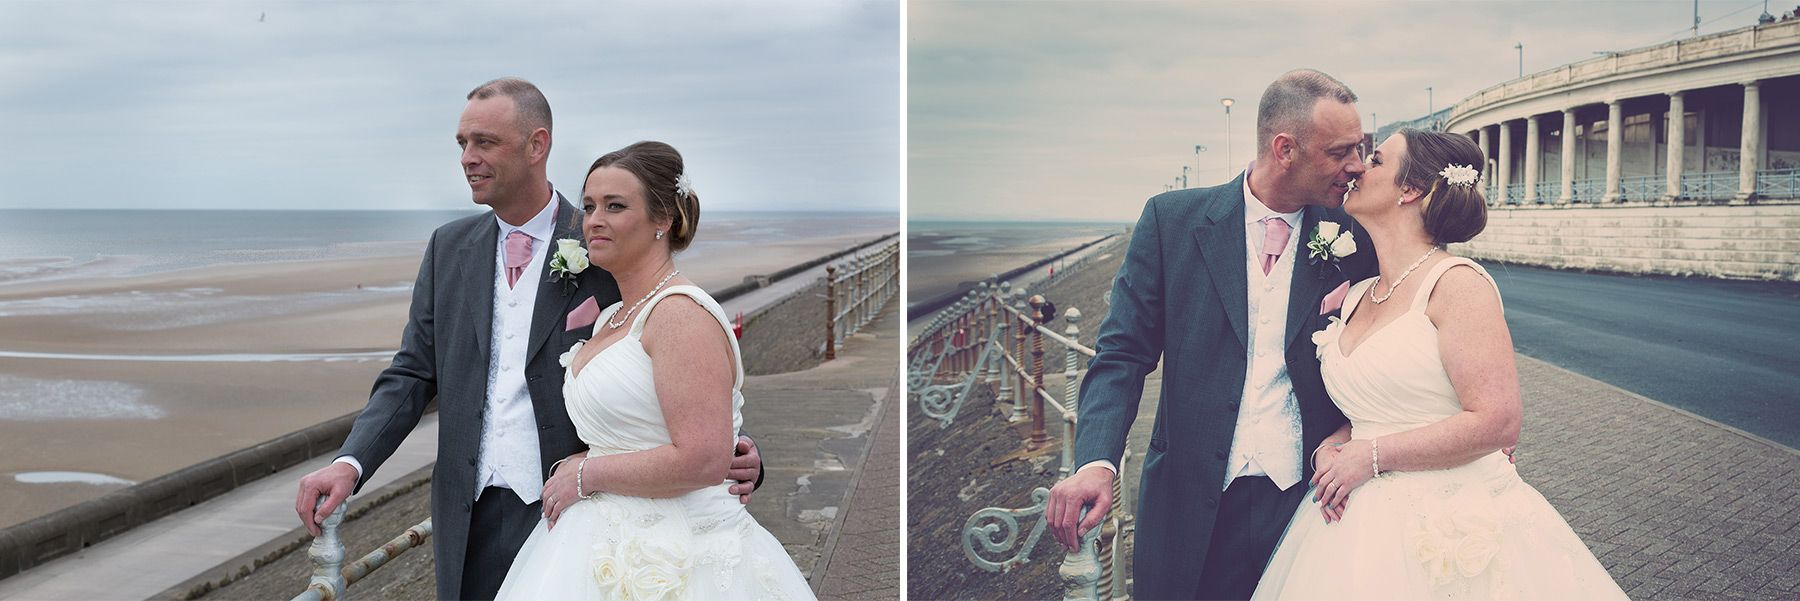 Alan & Kates Wedding Pavilion On The Prom Blackpool